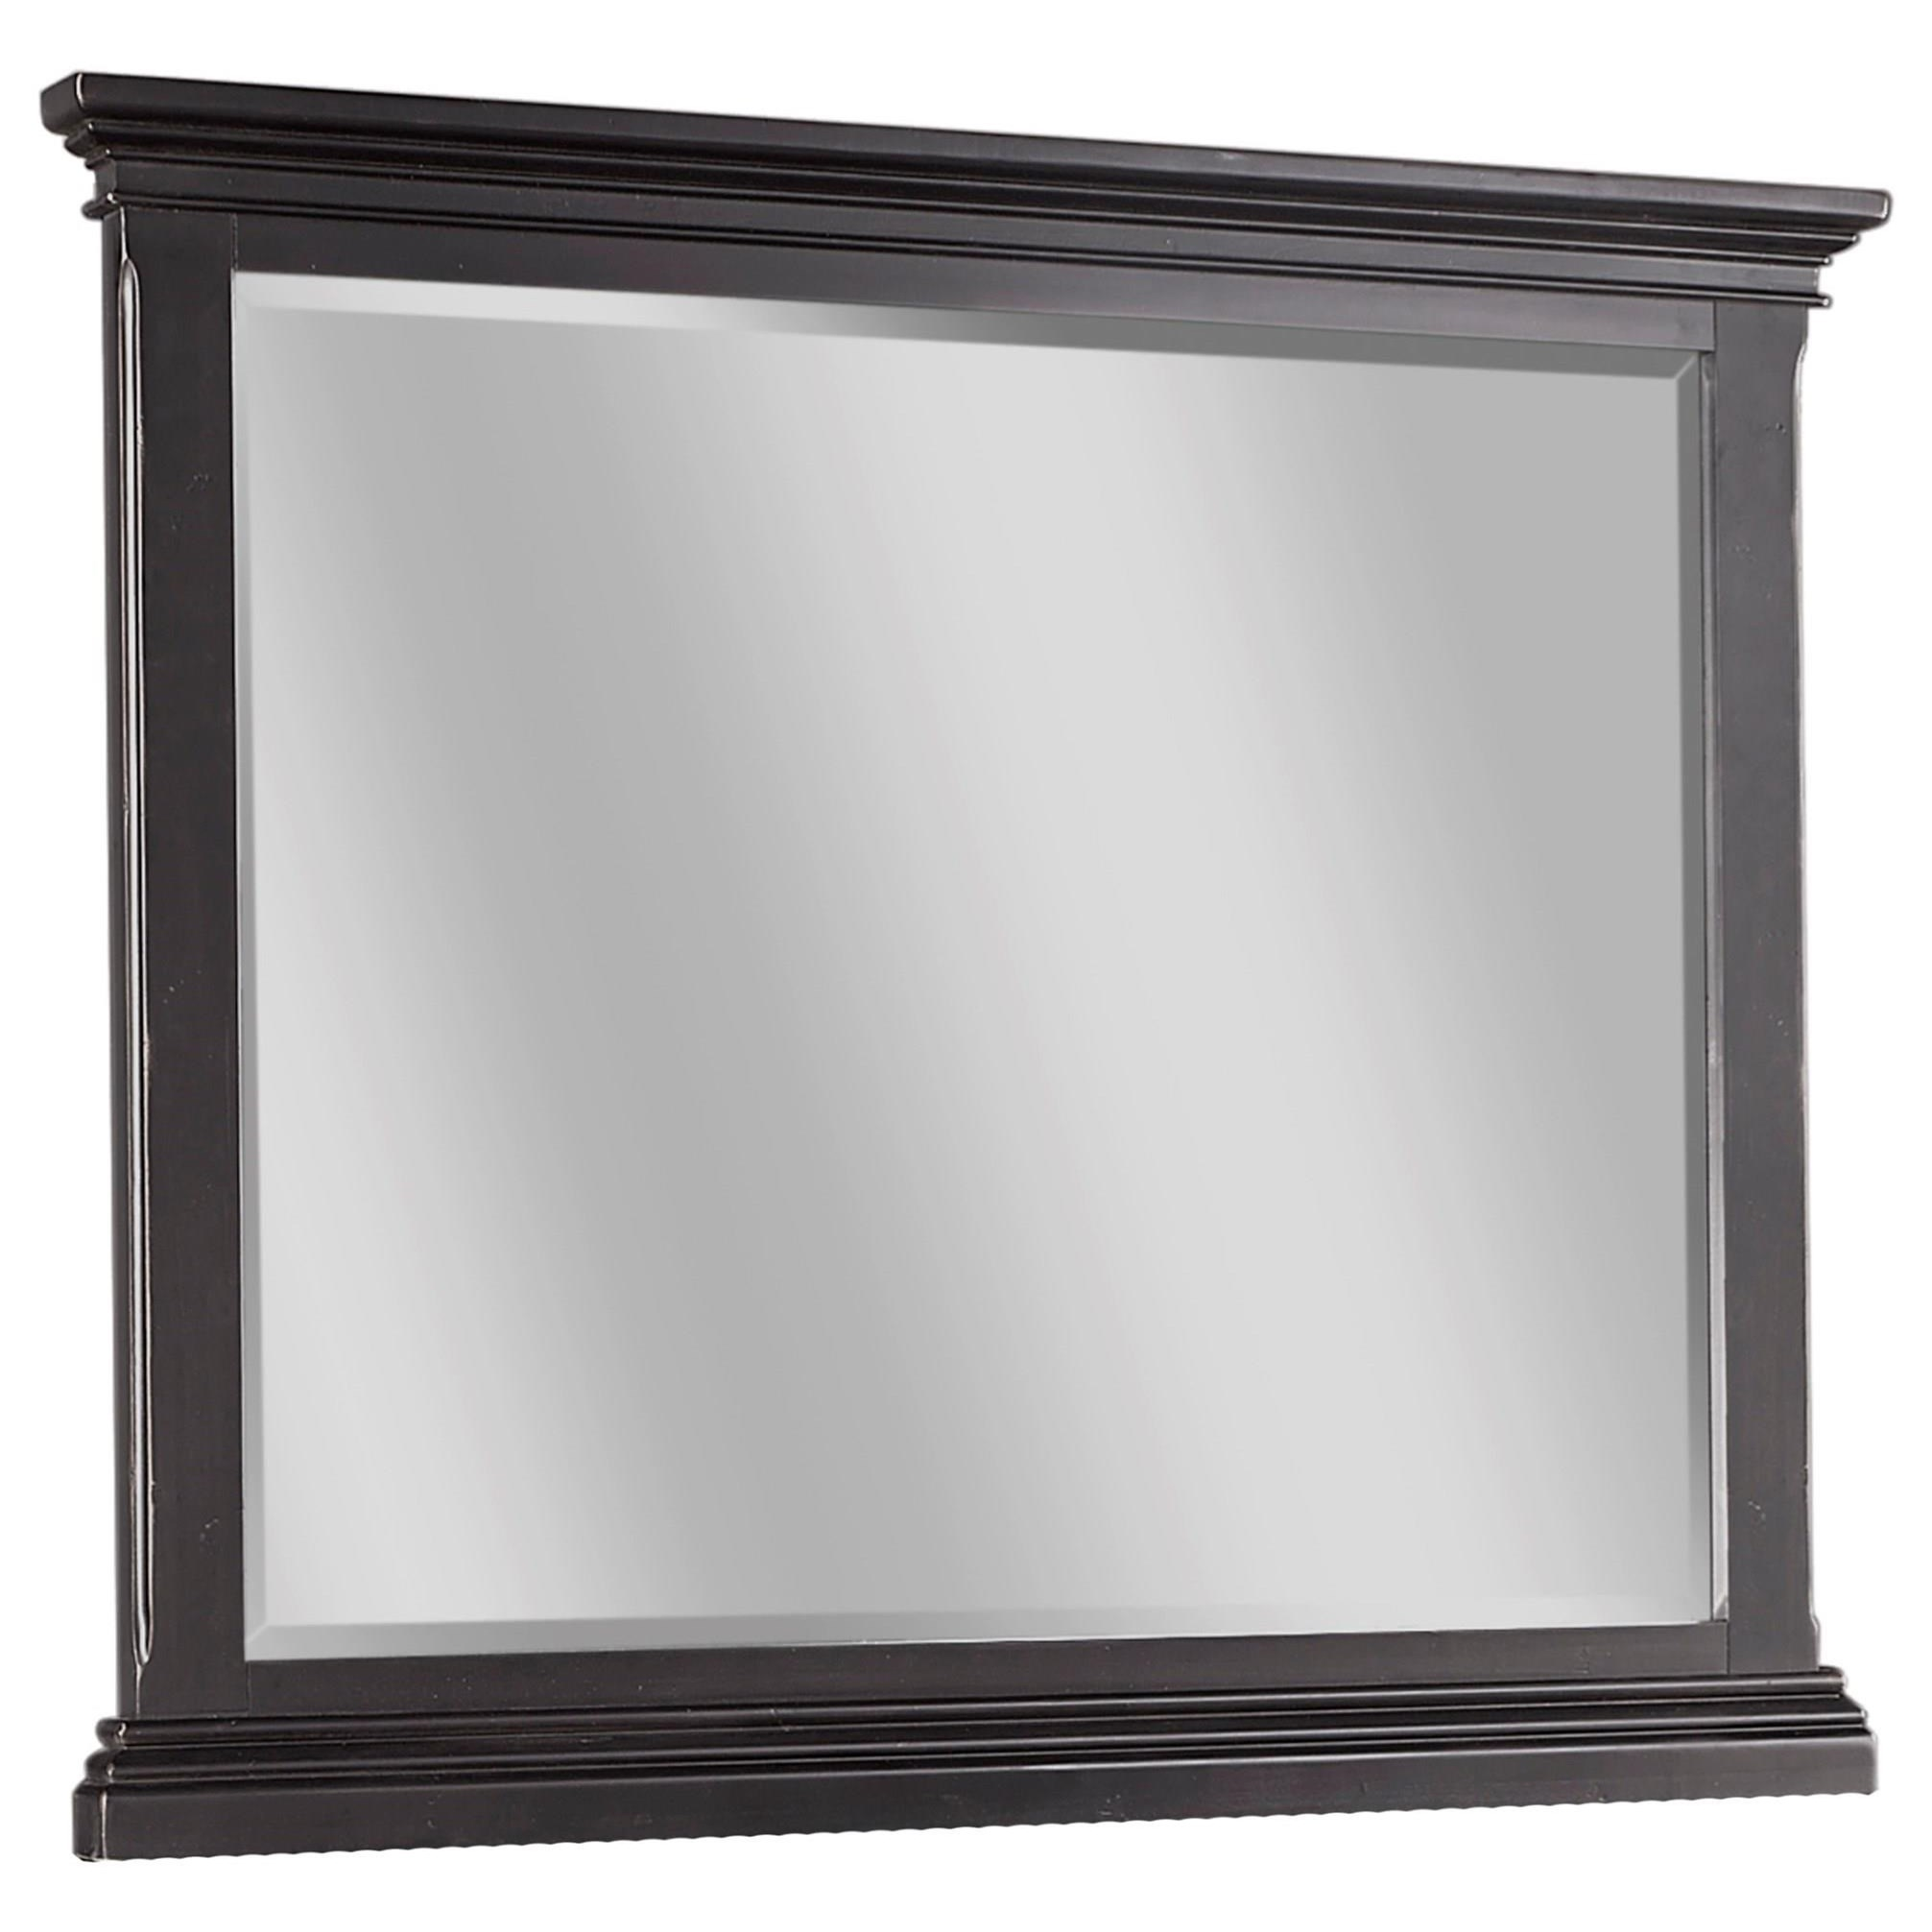 Aspenhome Oxford Landscape Mirror  - Item Number: I07-462-BLK